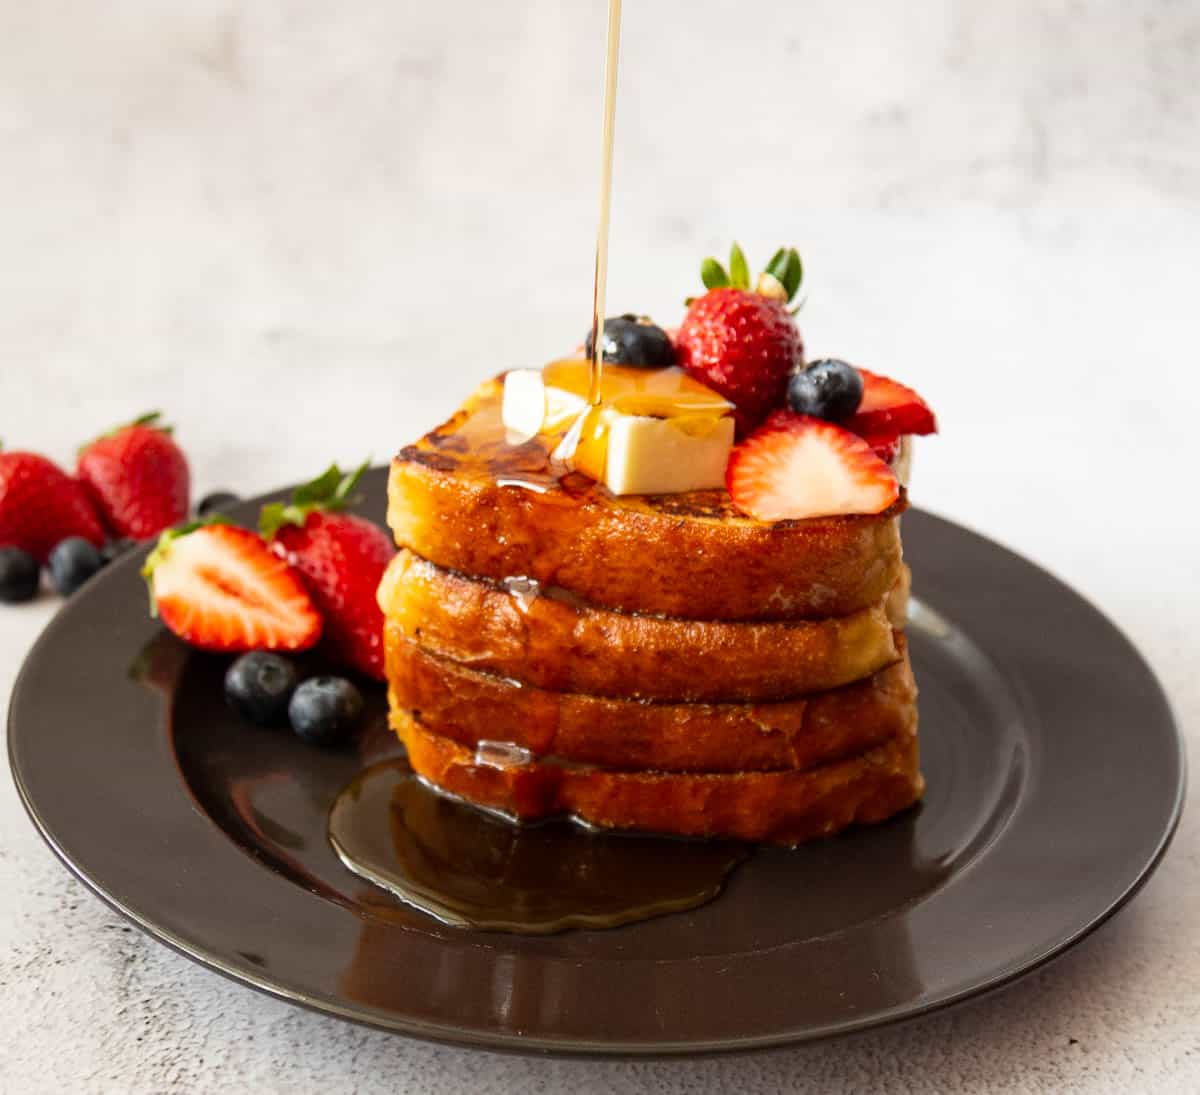 Stack of French toast on a black plate